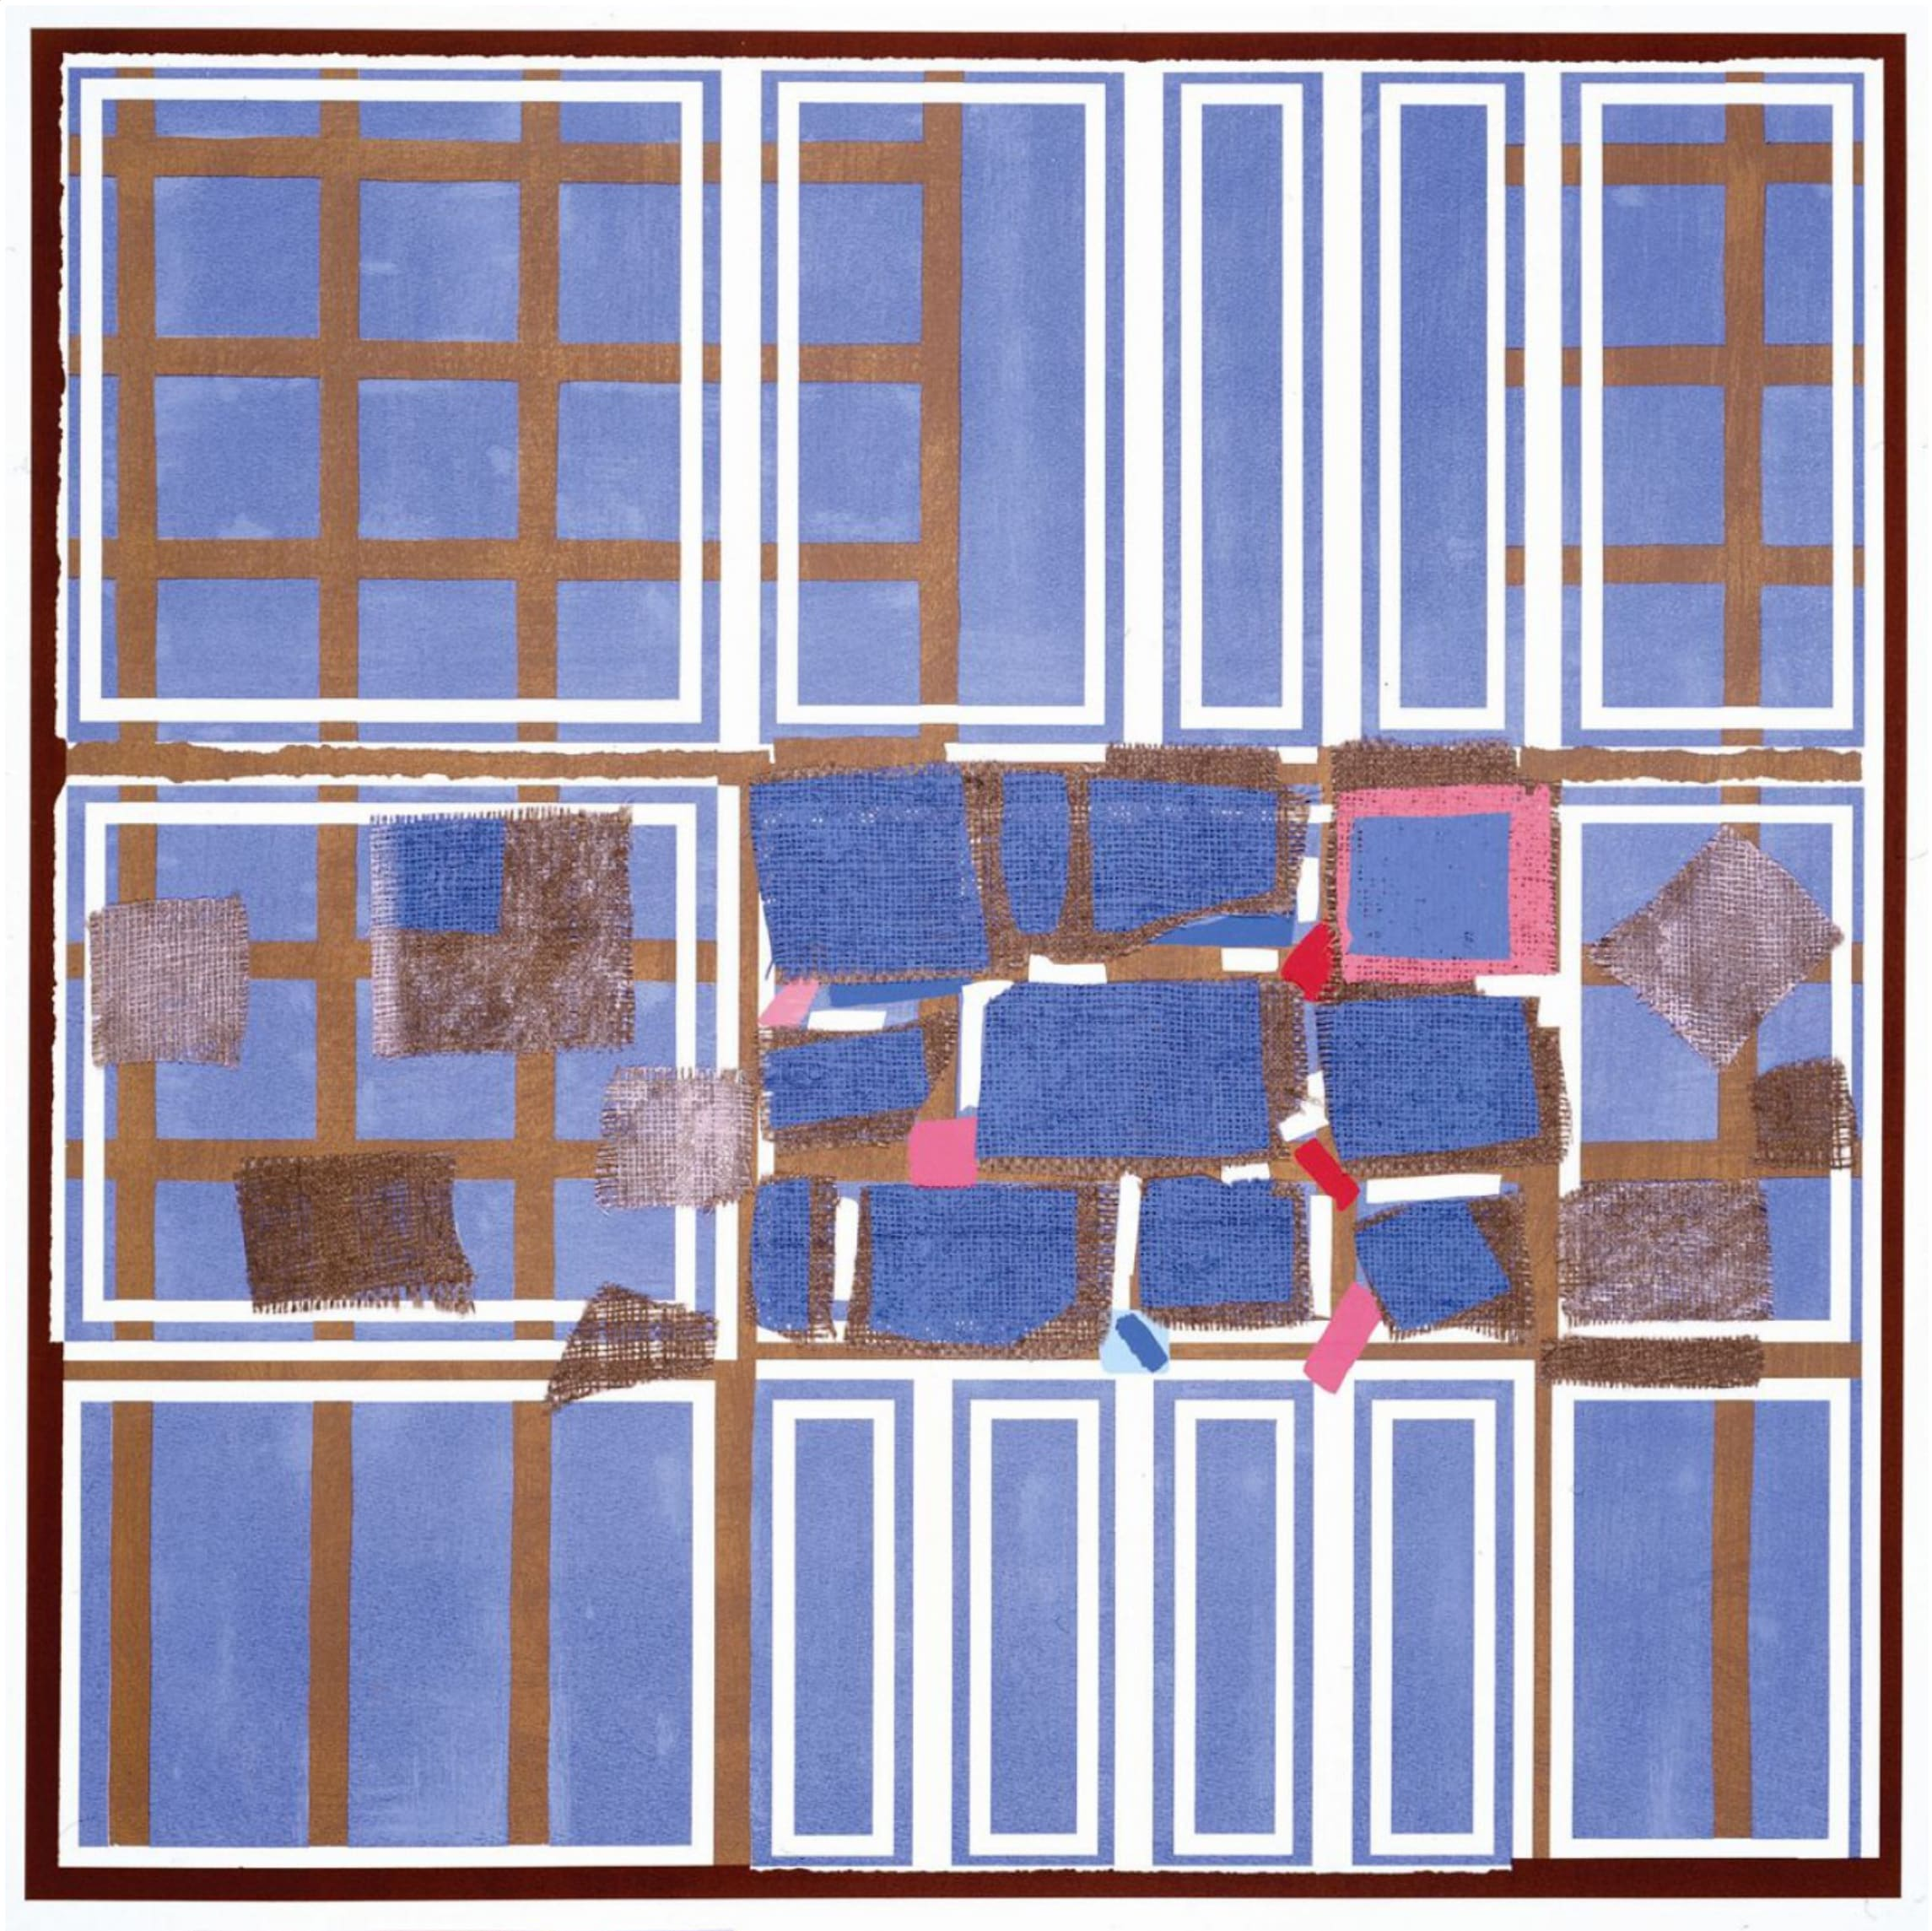 """<span class=""""link fancybox-details-link""""><a href=""""/artists/70-sandra-blow-ra/works/7031-sandra-blow-ra-blue-brown-interweave-2005/"""">View Detail Page</a></span><div class=""""artist""""><strong>Sandra Blow RA</strong></div> 1925–2006 <div class=""""title""""><em>Blue Brown Interweave</em>, 2005</div> <div class=""""signed_and_dated"""">signed, numbered and titled by the artist in pencil</div> <div class=""""medium"""">silkscreen print on paper with collaged hessian and paper elements</div> <div class=""""dimensions"""">image size: 71 x 71 cm<br /> sheet size: 94 x 91.5 cm</div> <div class=""""edition_details"""">edition of 125</div><div class=""""copyright_line"""">© The Estate of Sandra Blow</div>"""